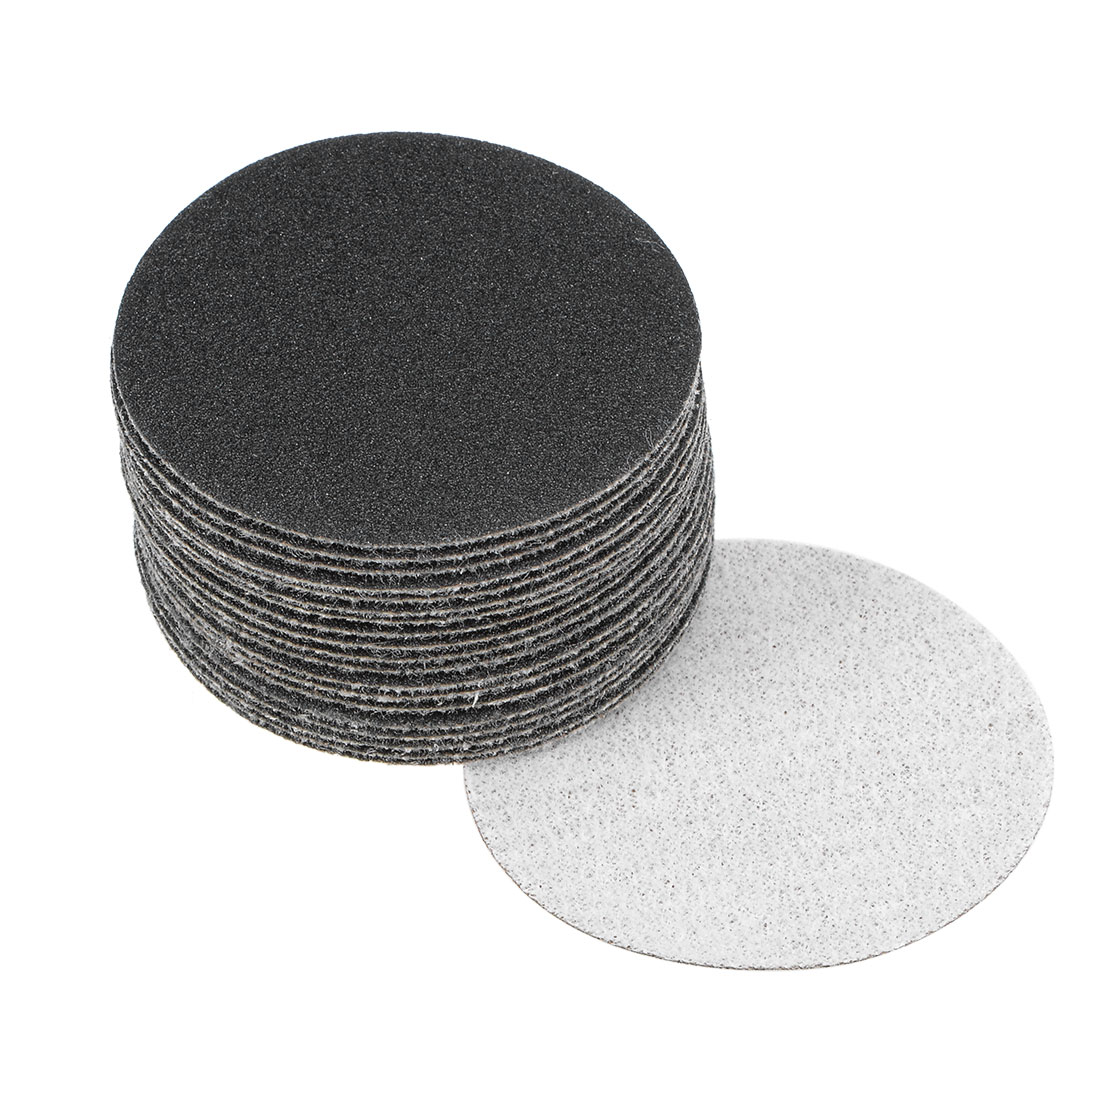 2 inch Wet Dry Discs 150 Grit Hook and Loop Sanding Disc Silicon Carbide 20pcs